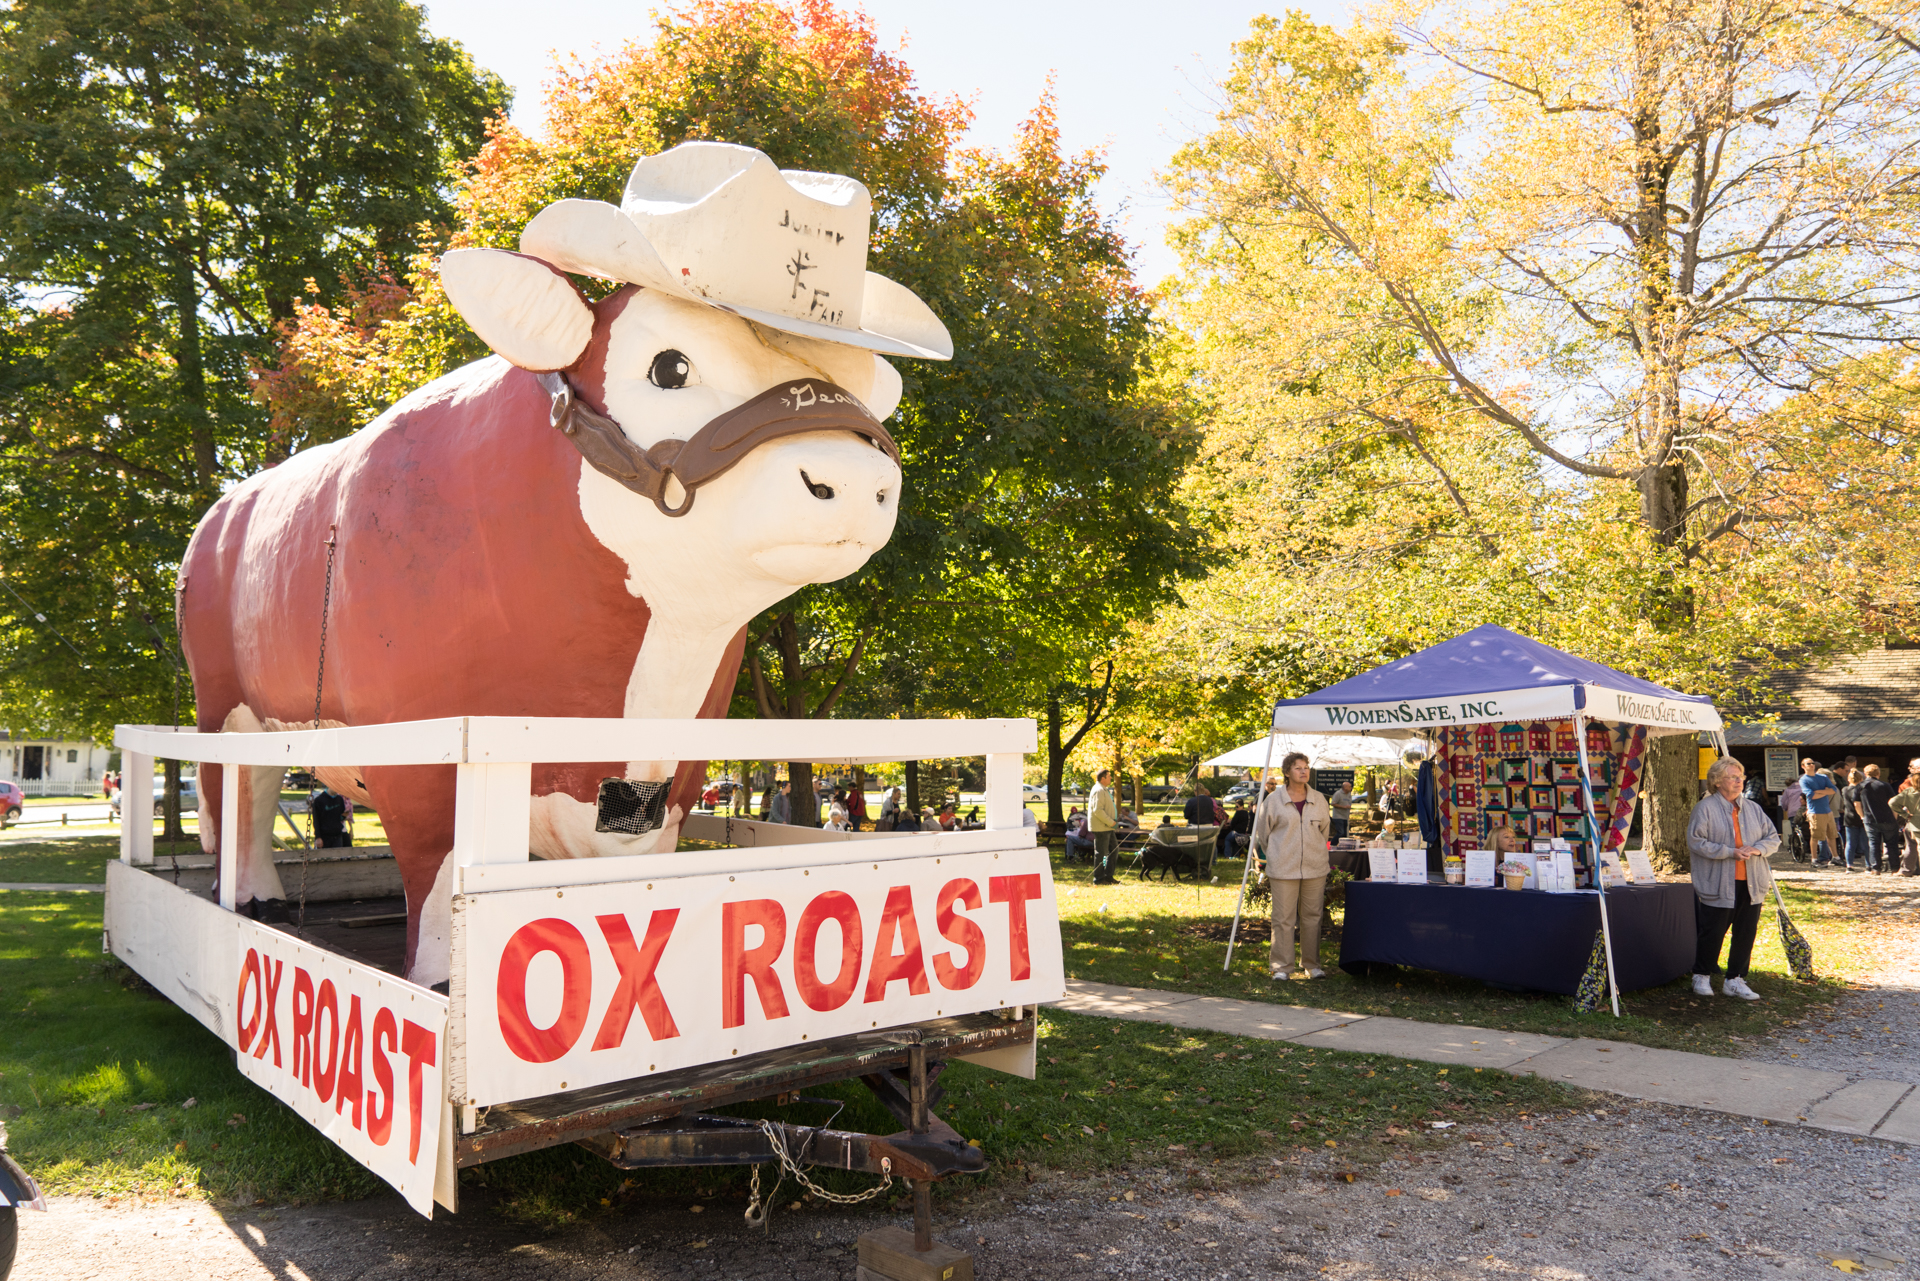 Oxtoberfest is delicious!